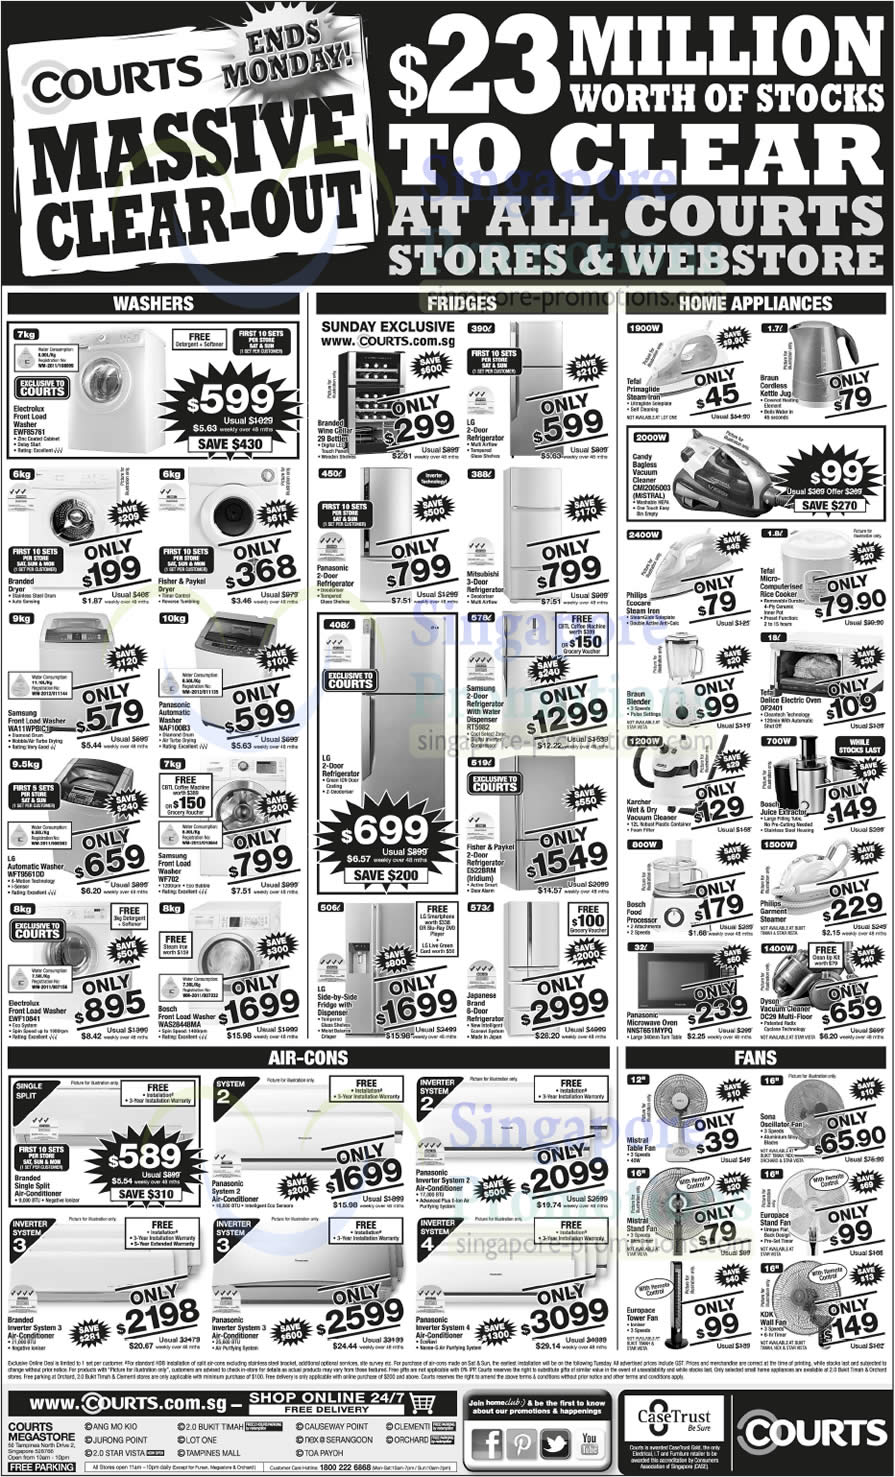 Electrolux, Samsung, Panasonic, LG, Bosch Washers, Fisher n Paykel Fridges, Candy, Dyson Vacuum Cleaners, Tefal Electric Oven